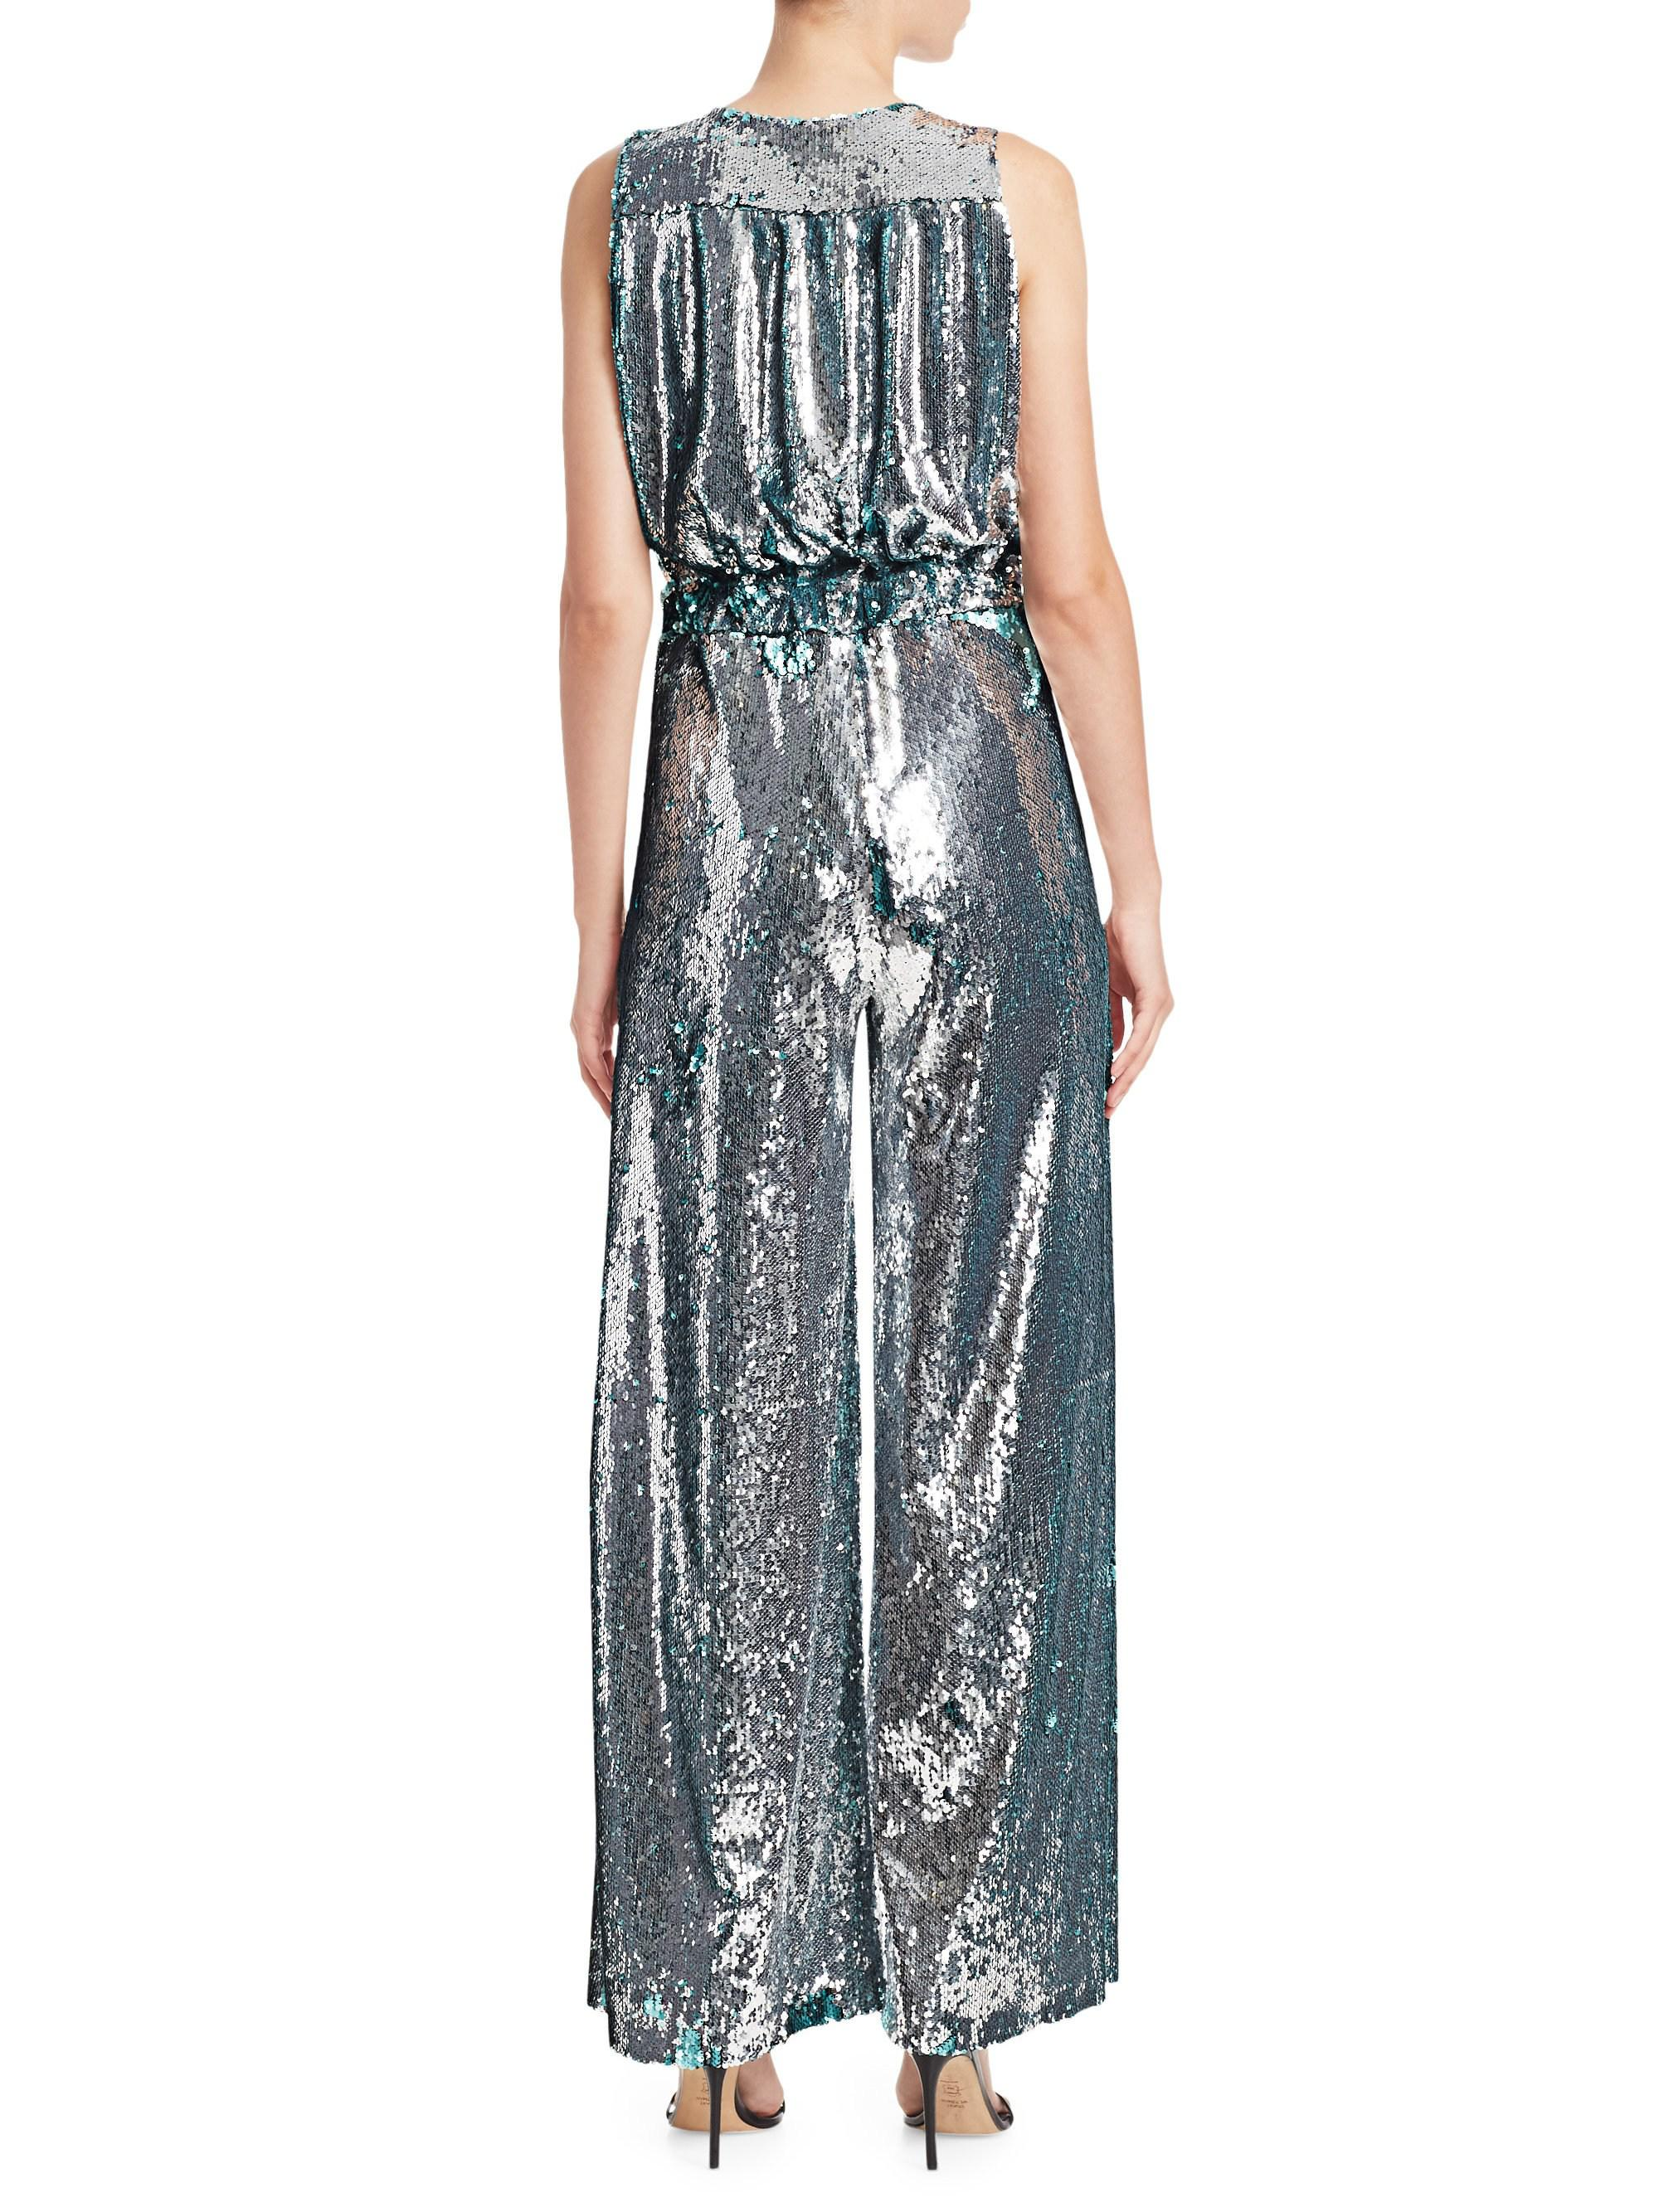 b3bccb1fabdc Carolina Ritzler Sleeveless Sequin Jumpsuit - Lyst